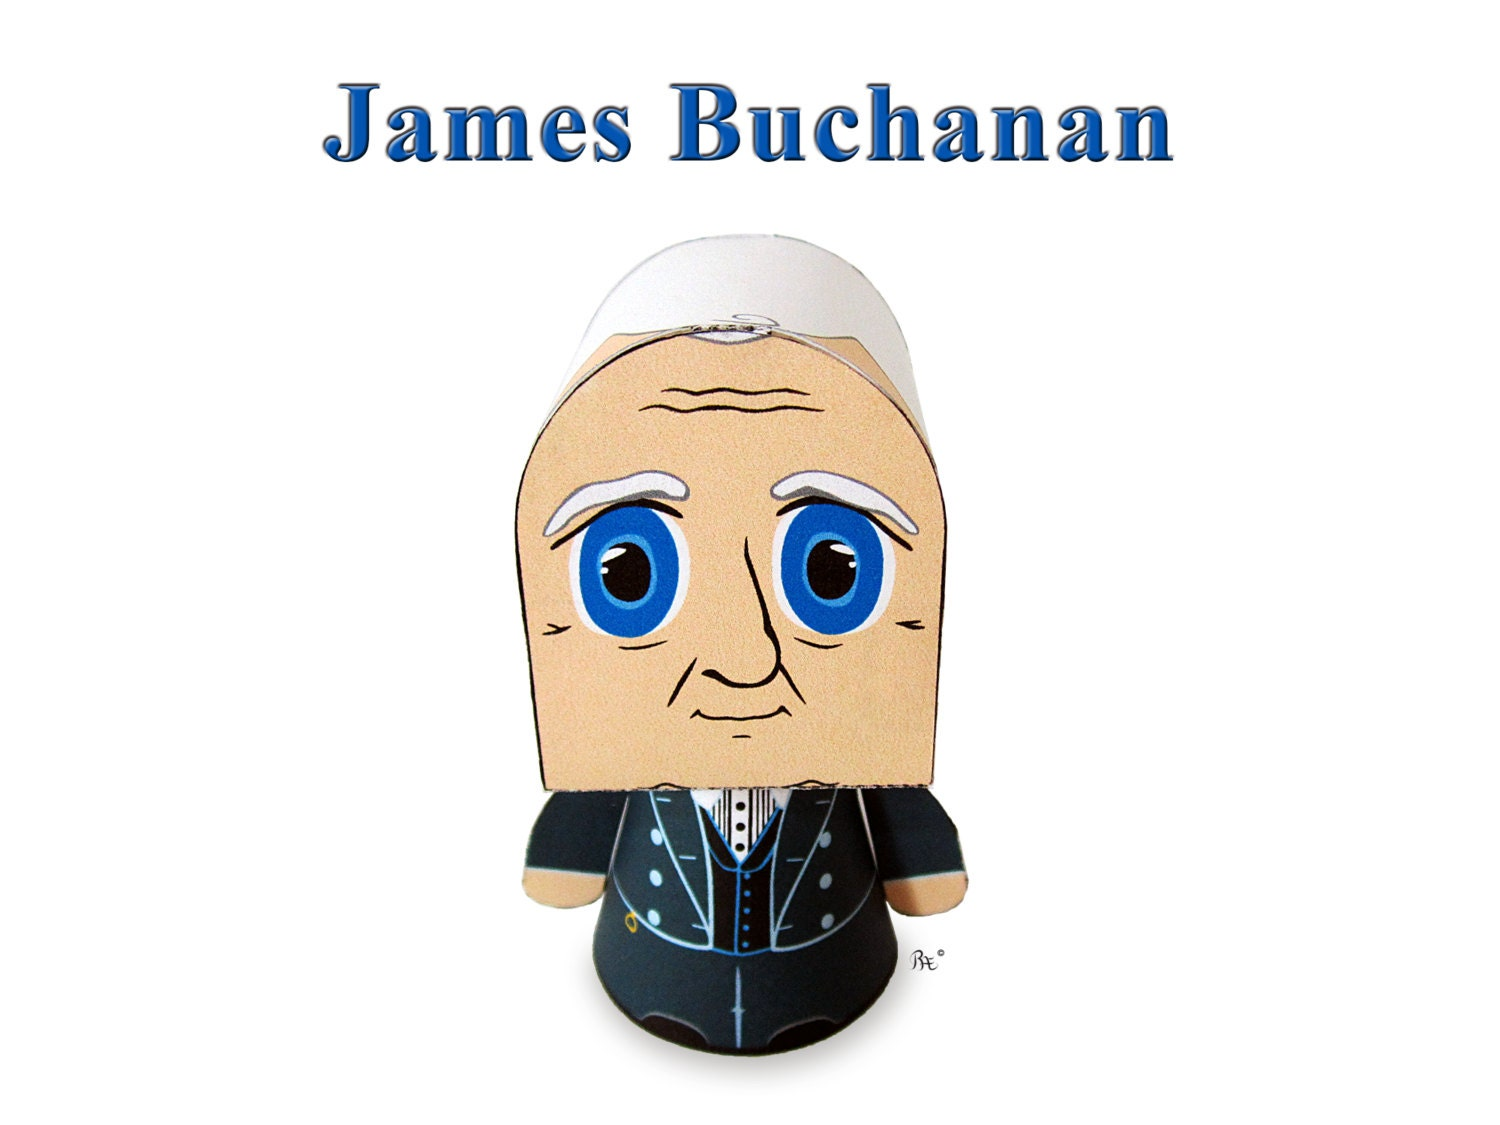 the failure of james buchanan essay Geoffrey brennan explains how james buchanan taught us to focus most widely cited) papers were his analysis of price-excludable collective goods—his 'theory of failure' to set alongside the analysis of so-called.